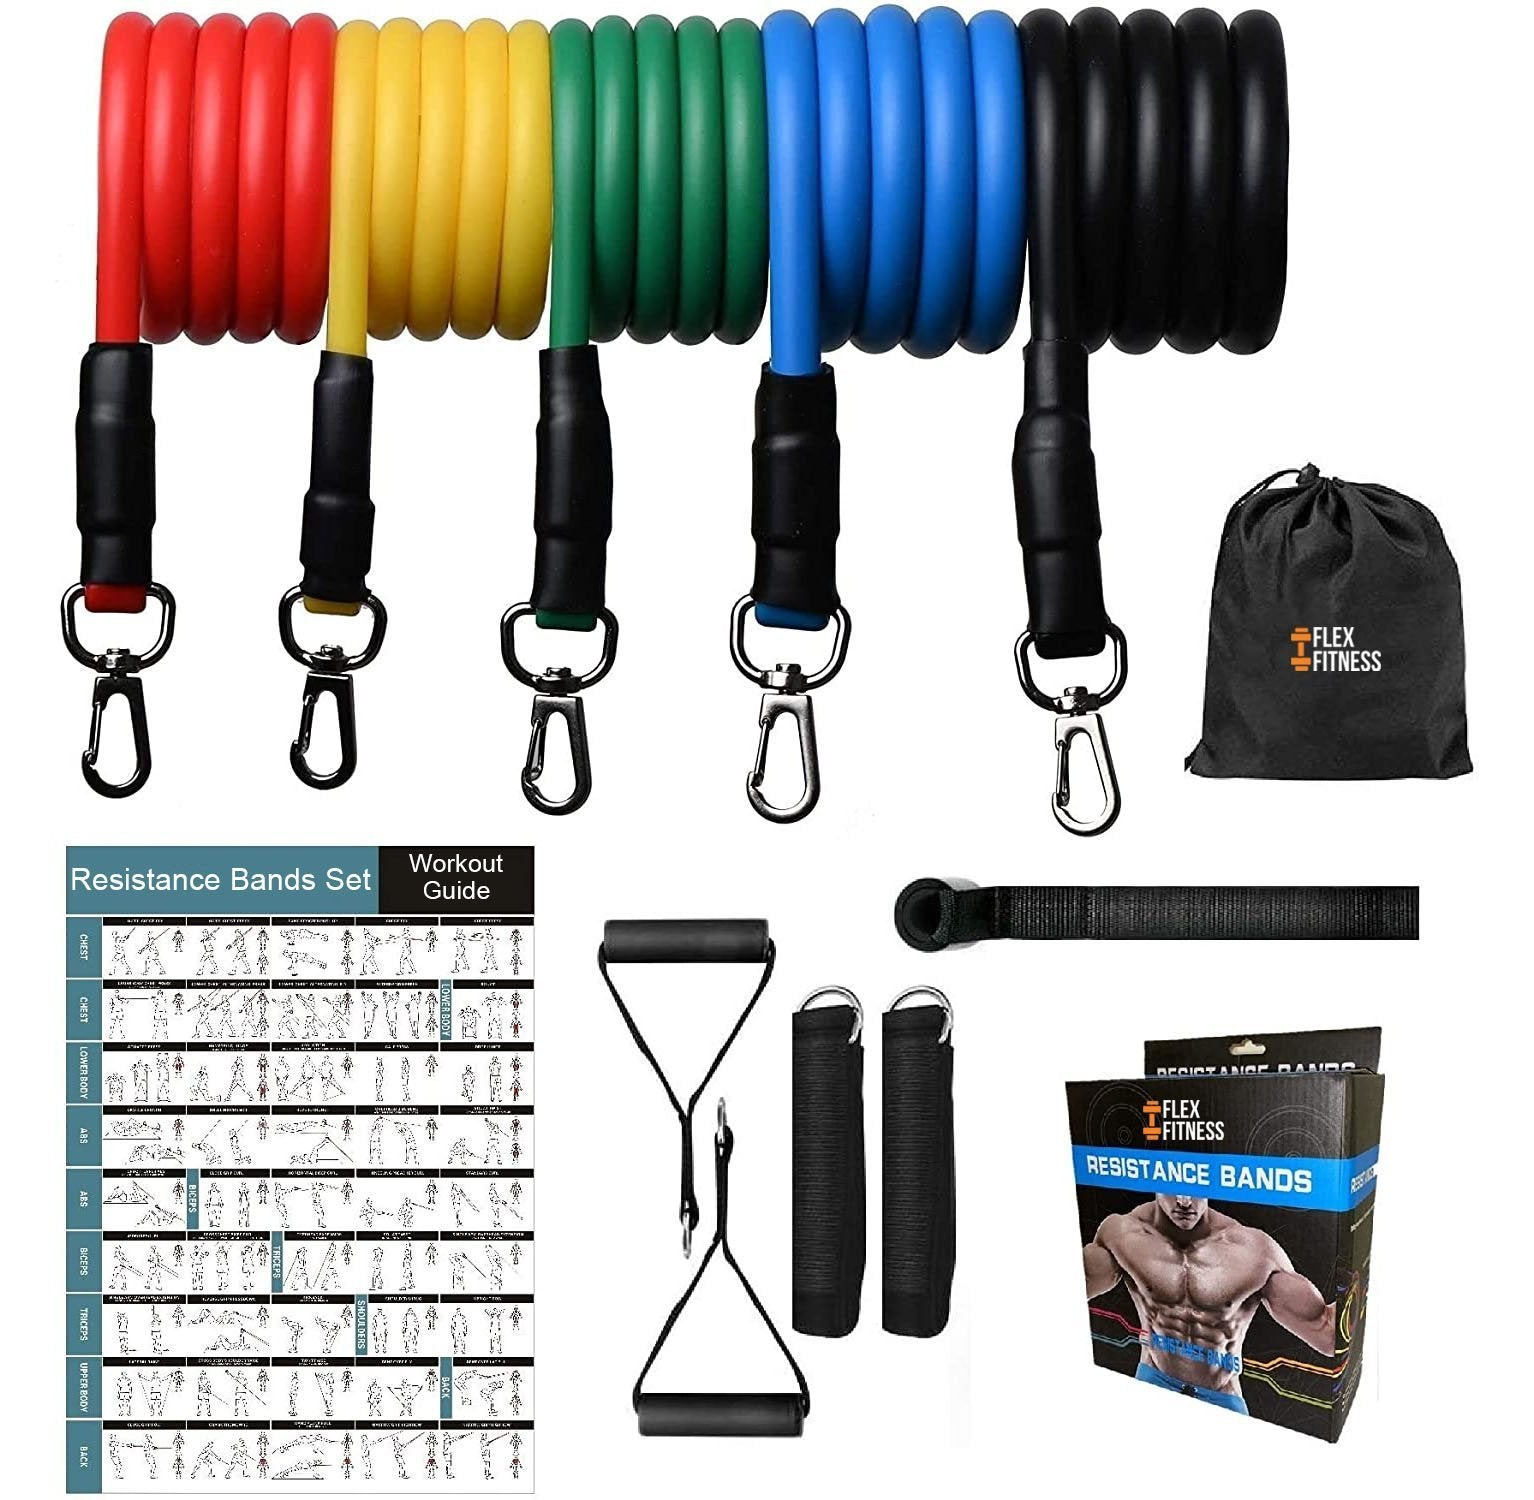 Full Body Workout Resistance Bands Set (11 Pcs)